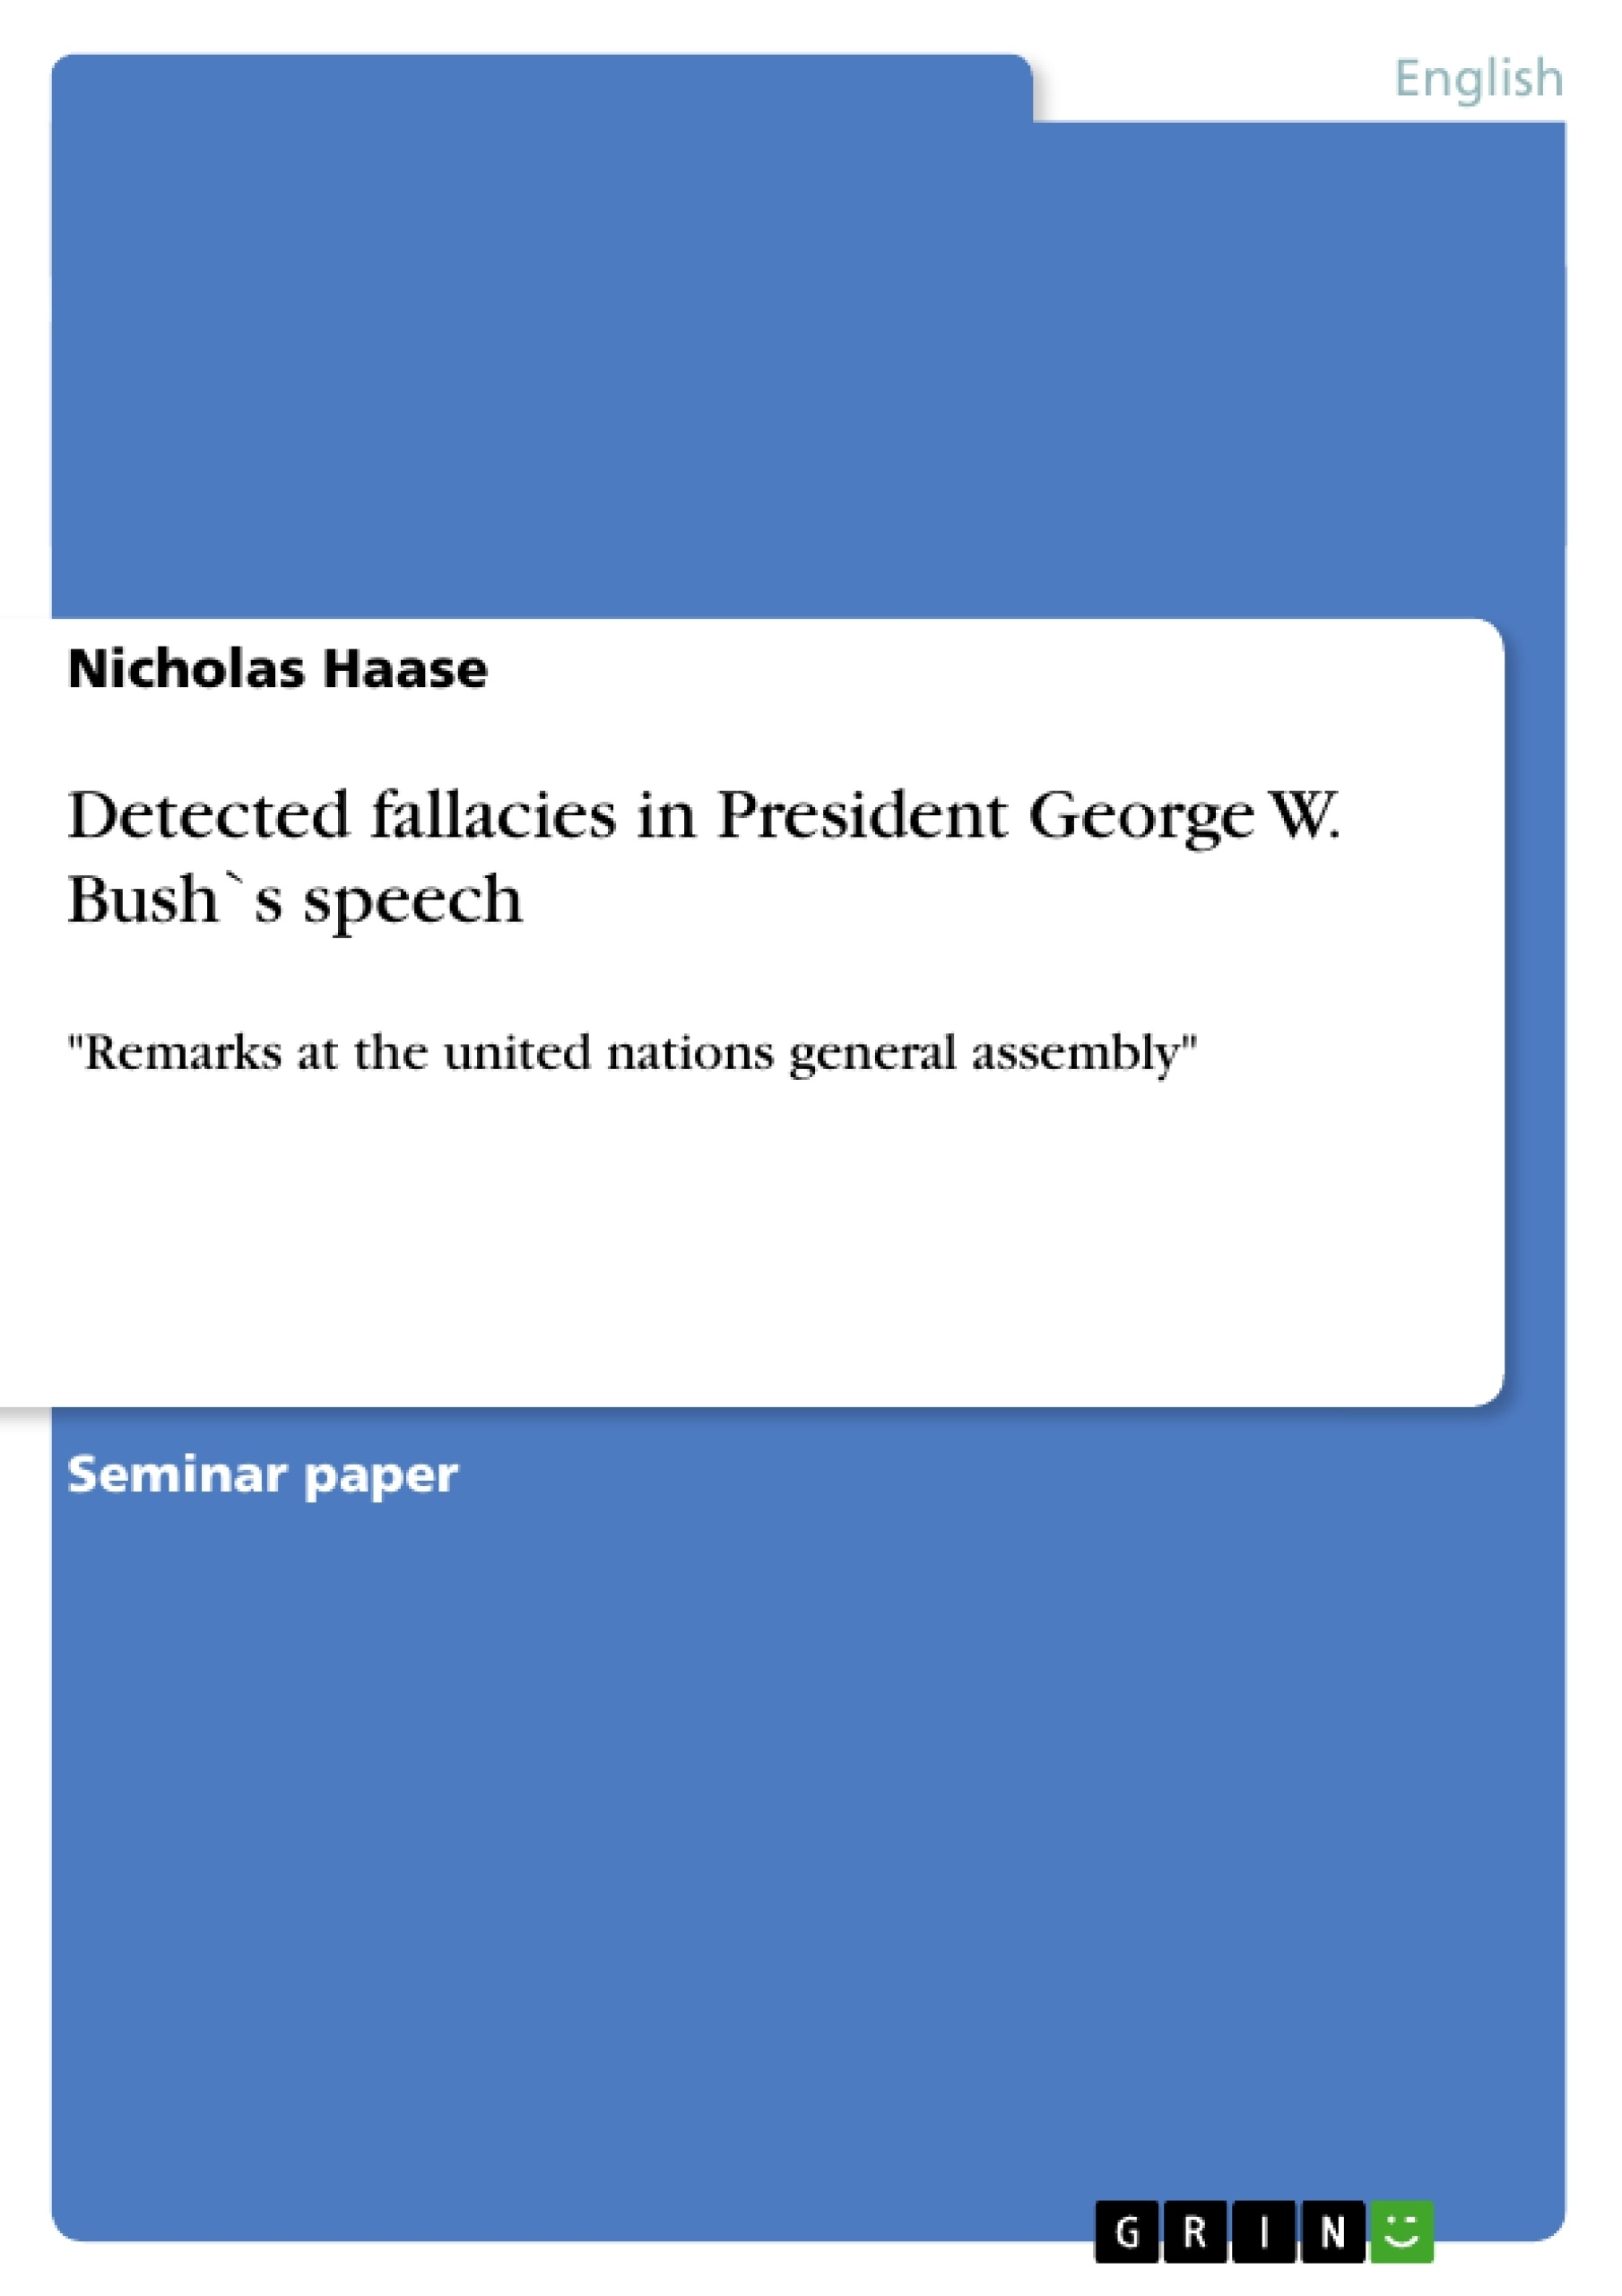 detected fallacies in president george w bush`s speech publish upload your own papers earn money and win an iphone 7